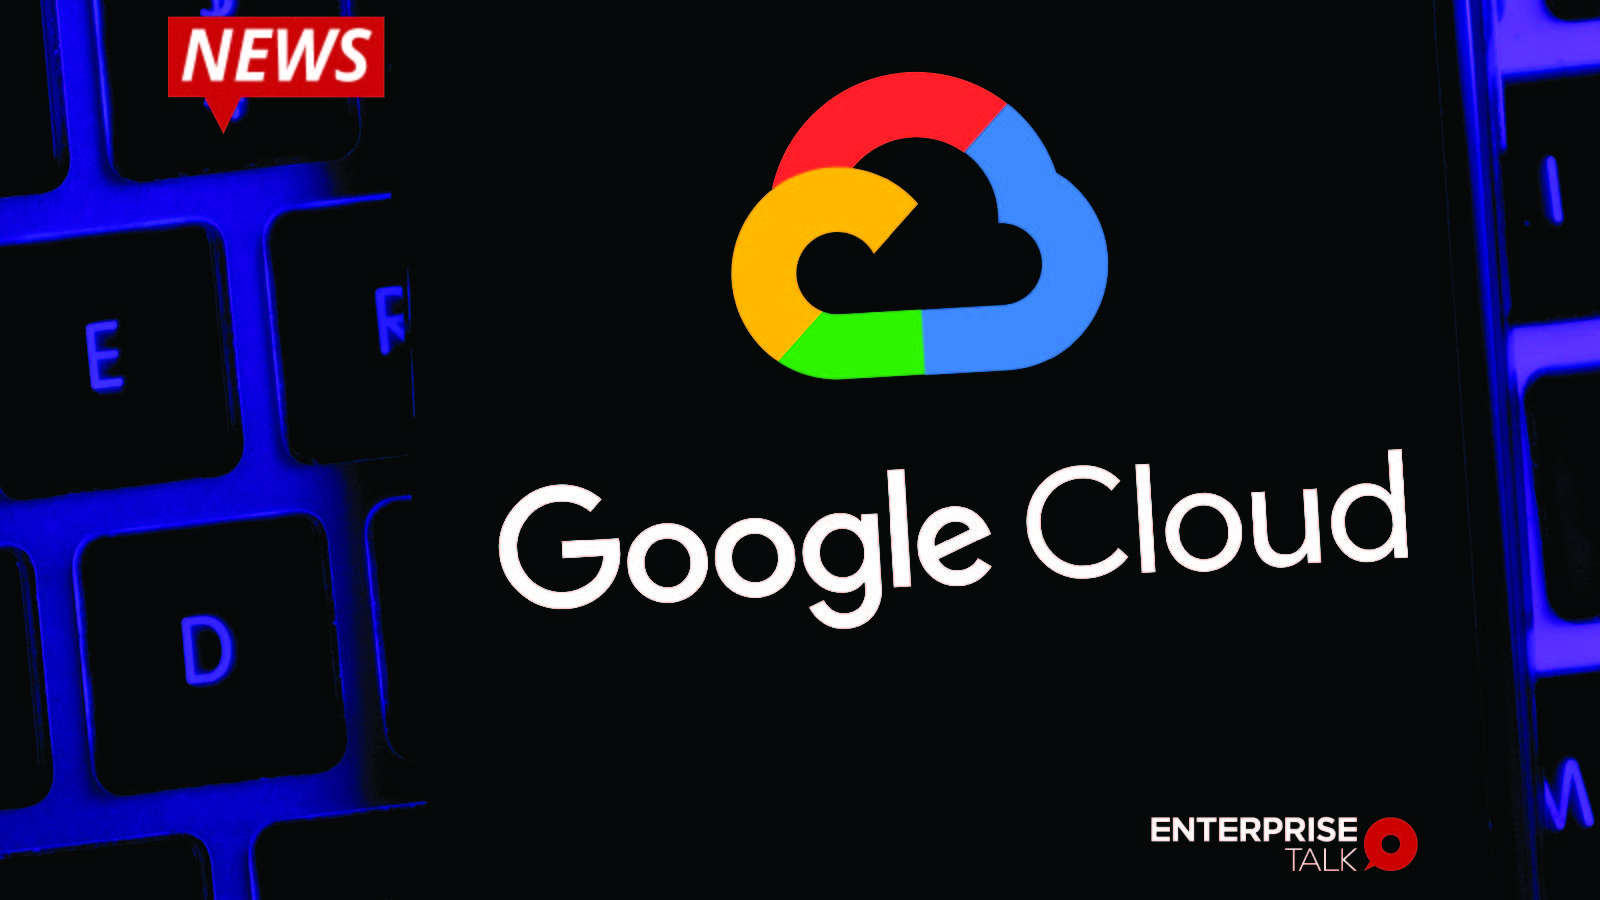 Defense Innovation, Google Cloud, Secure Cloud Management Solution